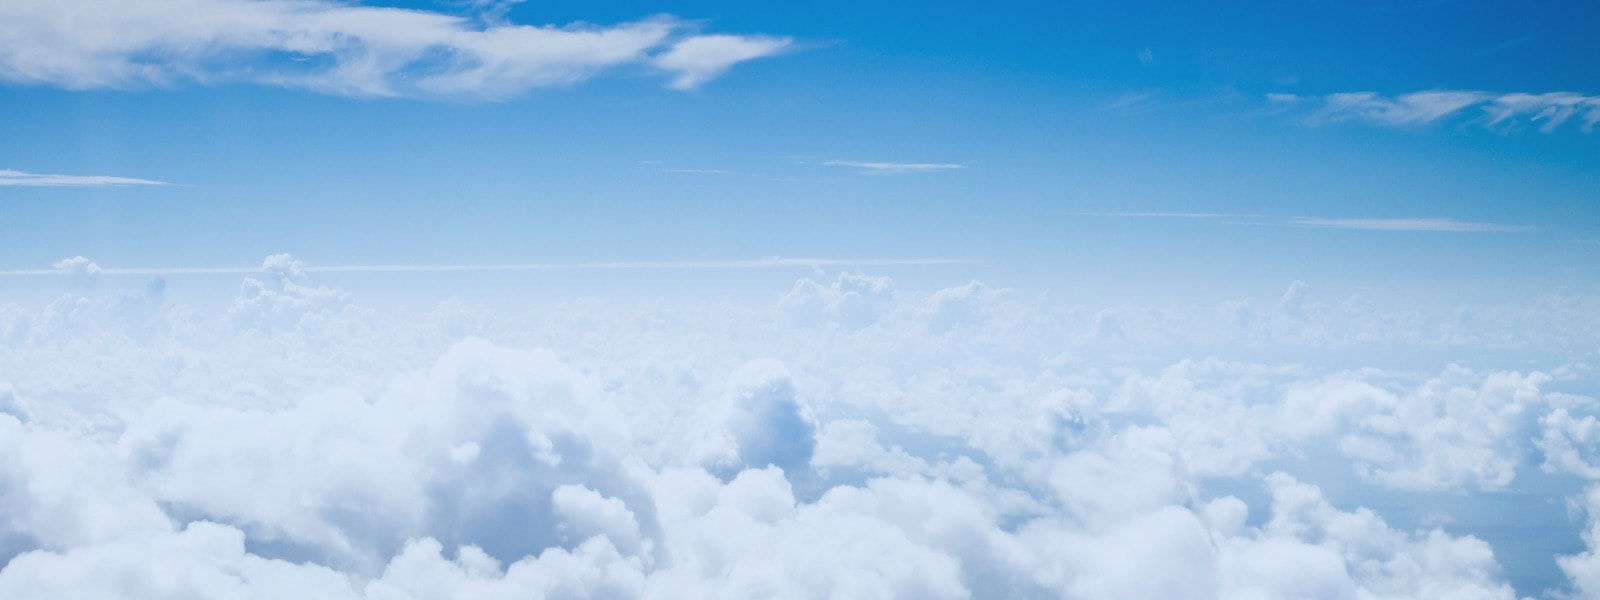 over-the-clouds-picture-id165932816-min